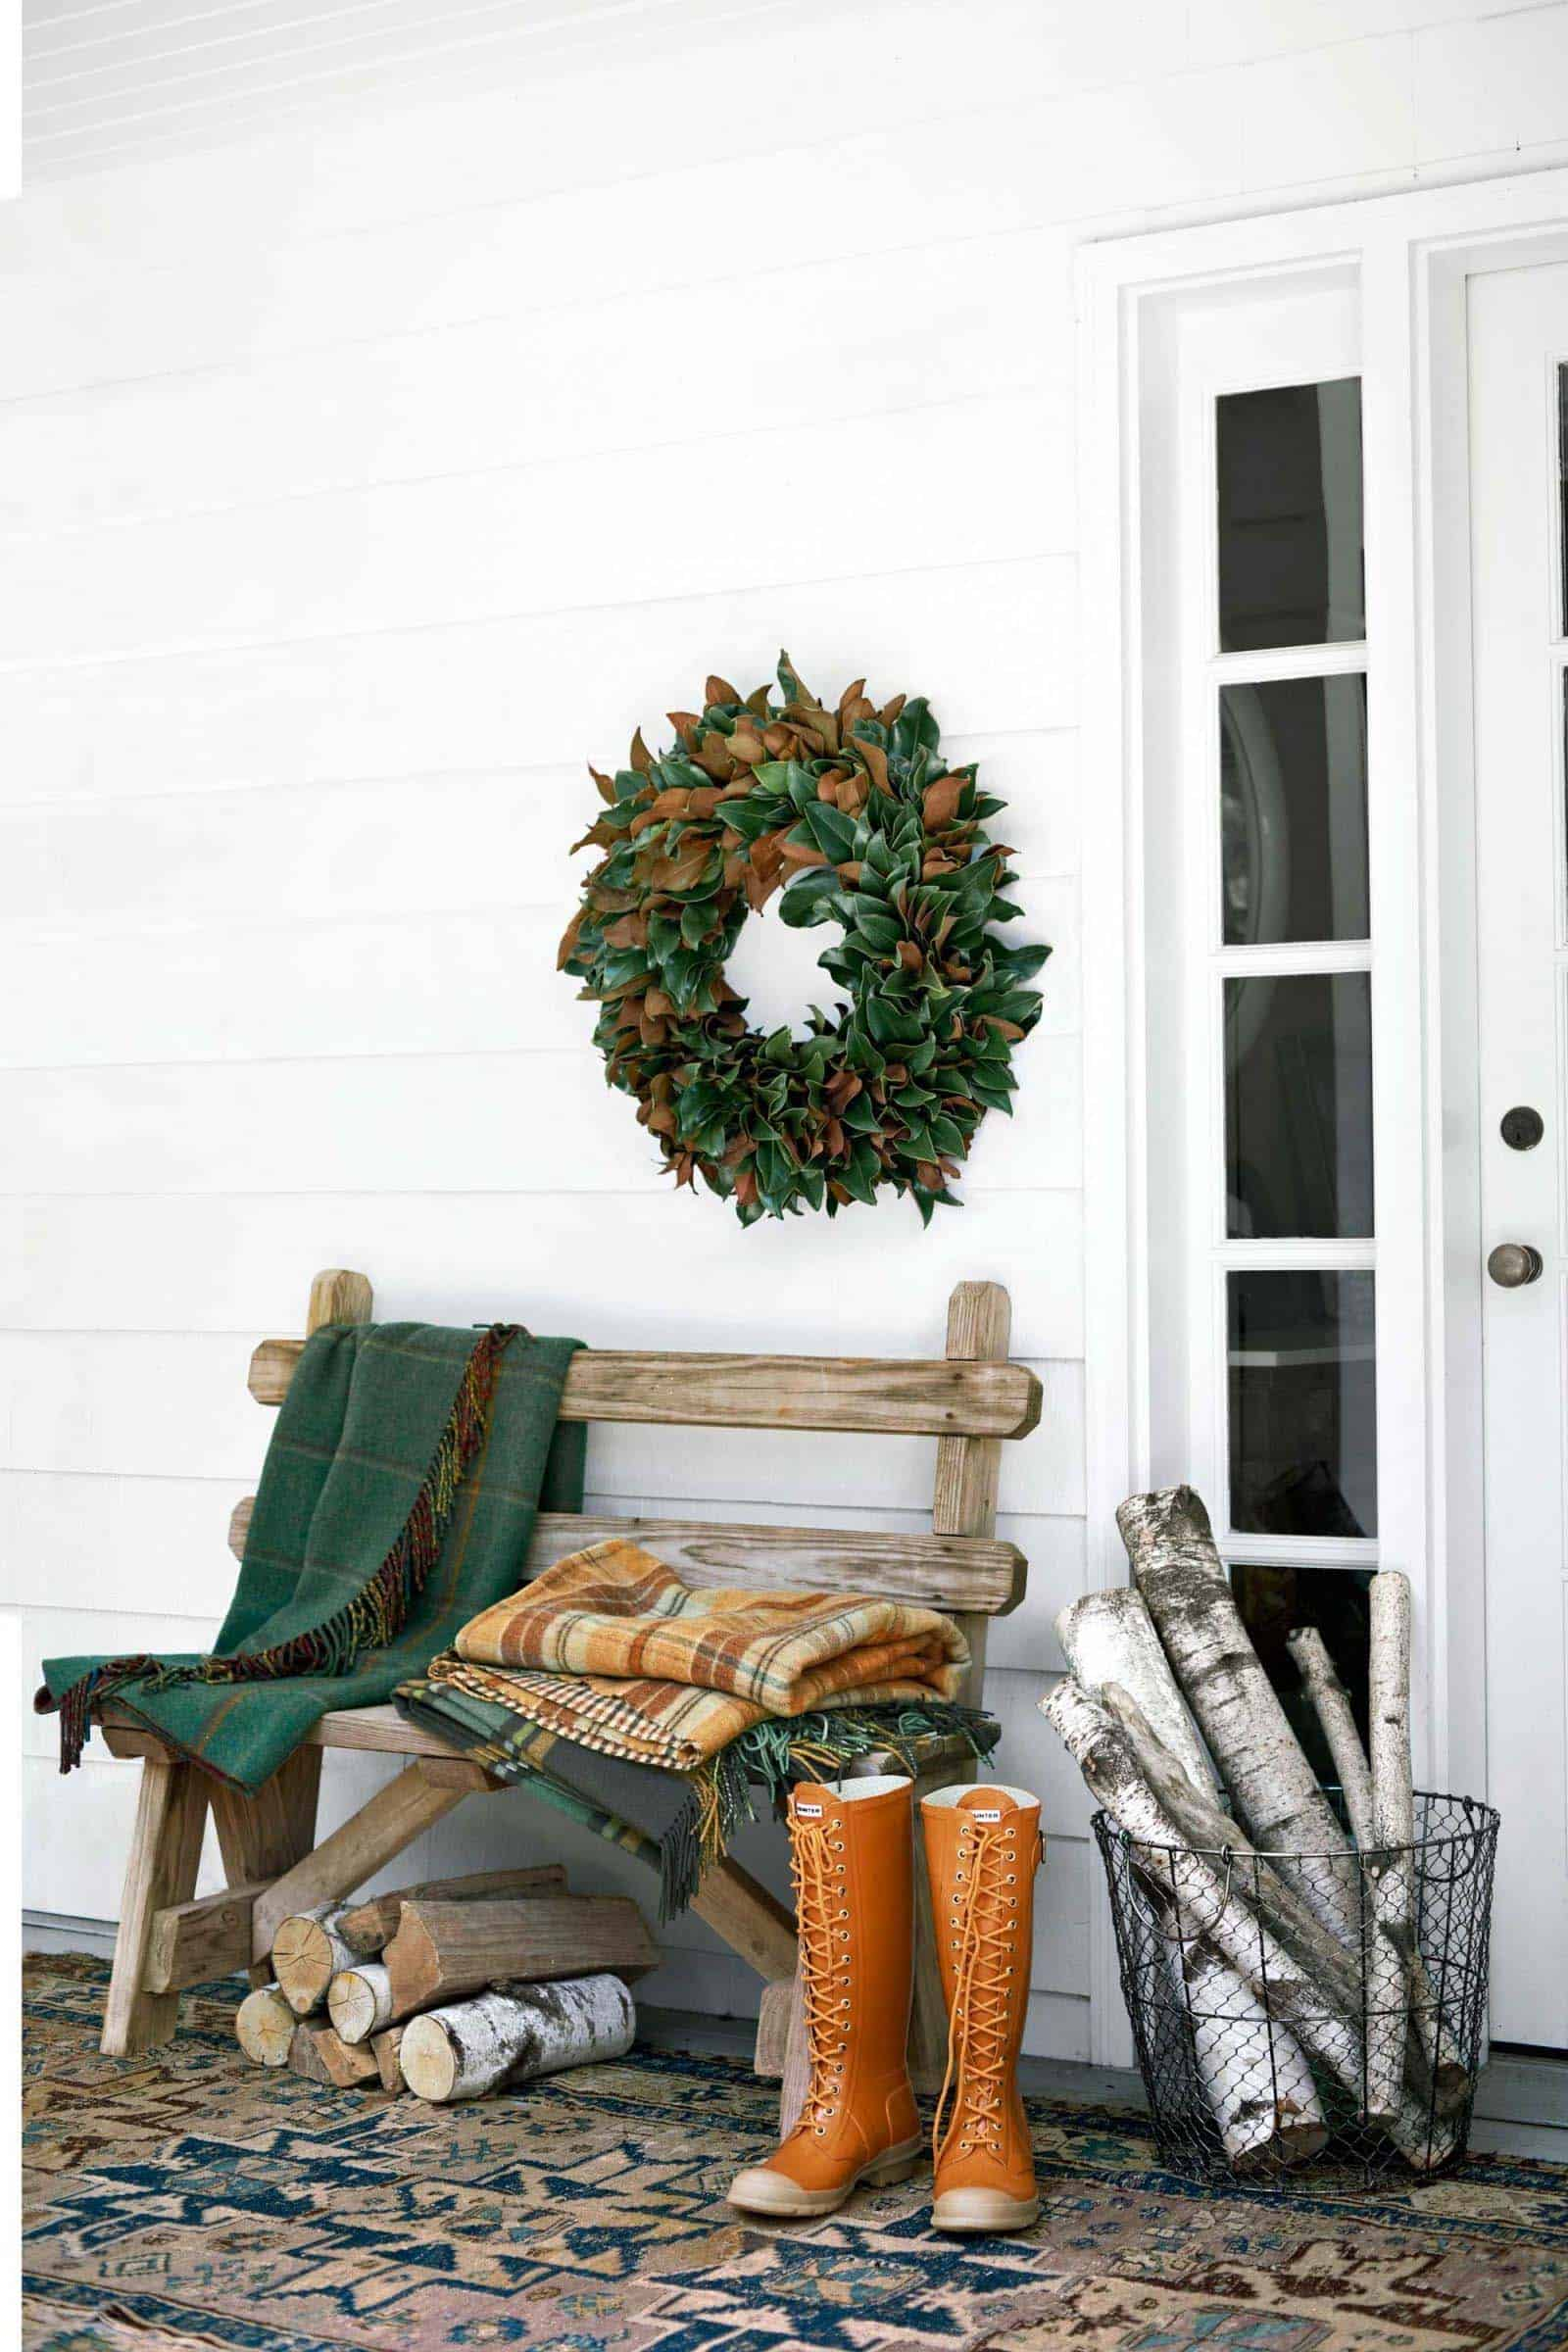 46 of the Coziest Ways to Decorate your Outdoor Spaces for ... on Backyard Garden Decor id=57886